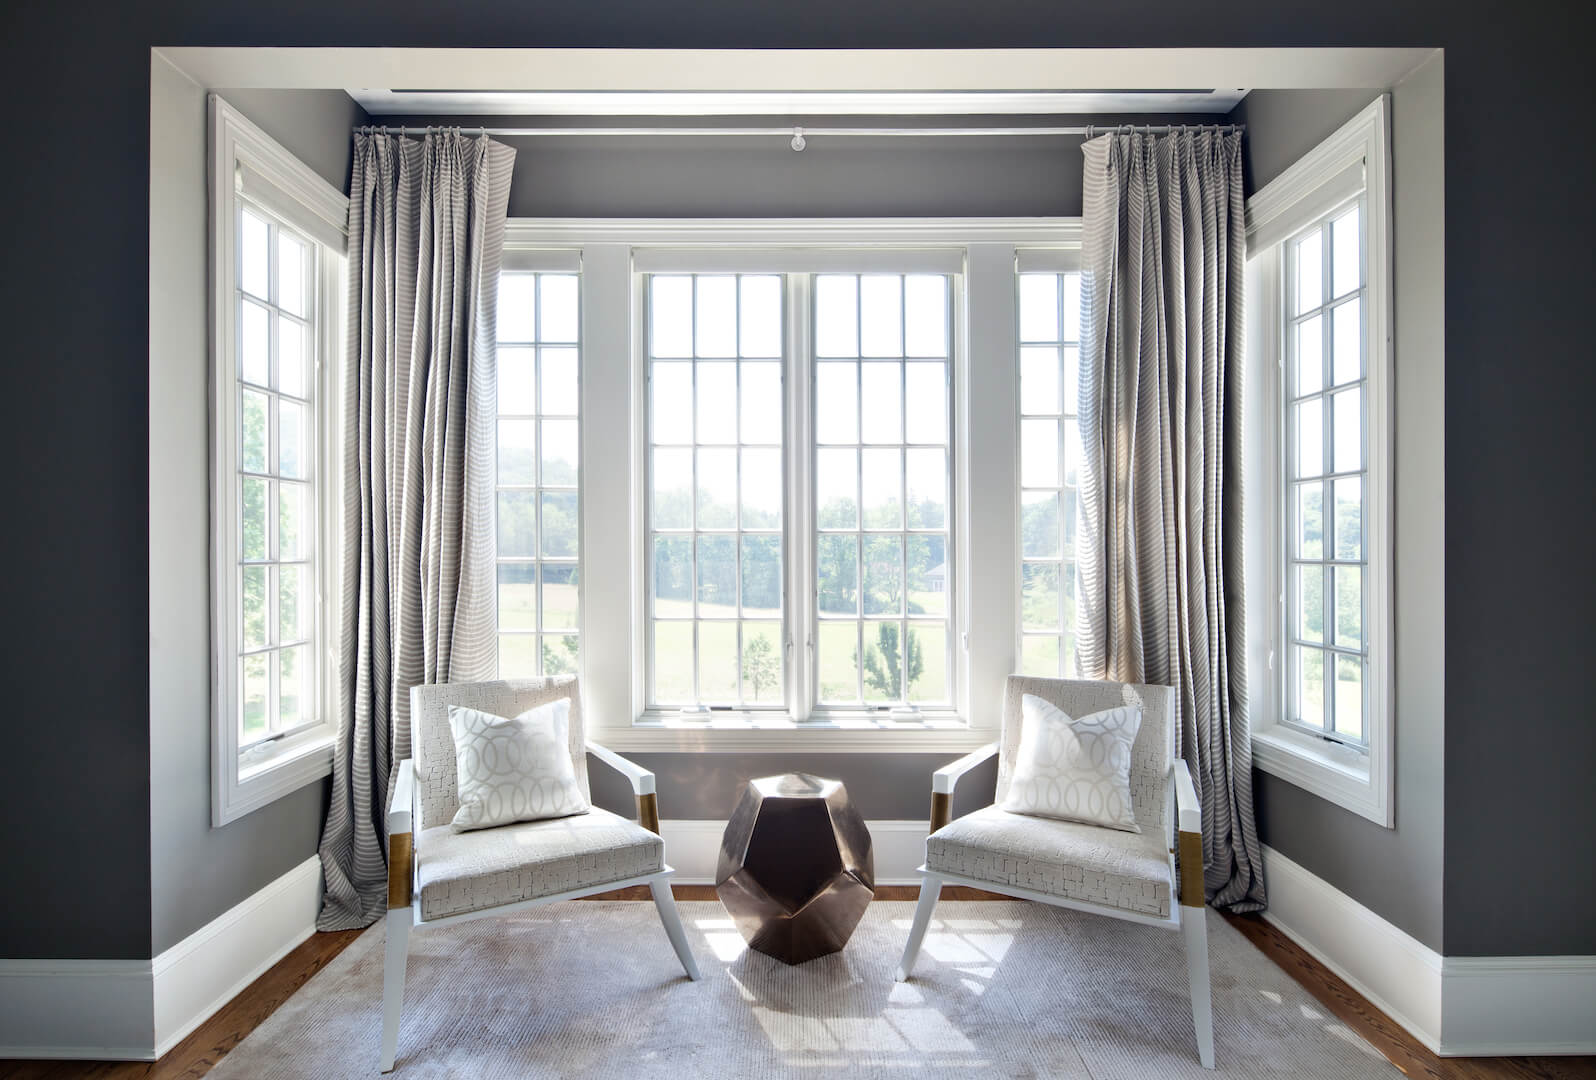 A small sitting area by the bay windows of the primary suite. The contemporary chairs are matched with a small area rug and a metallic side table in bronze. The subtle striped curtains behind the seating area add a dimension of pattern.